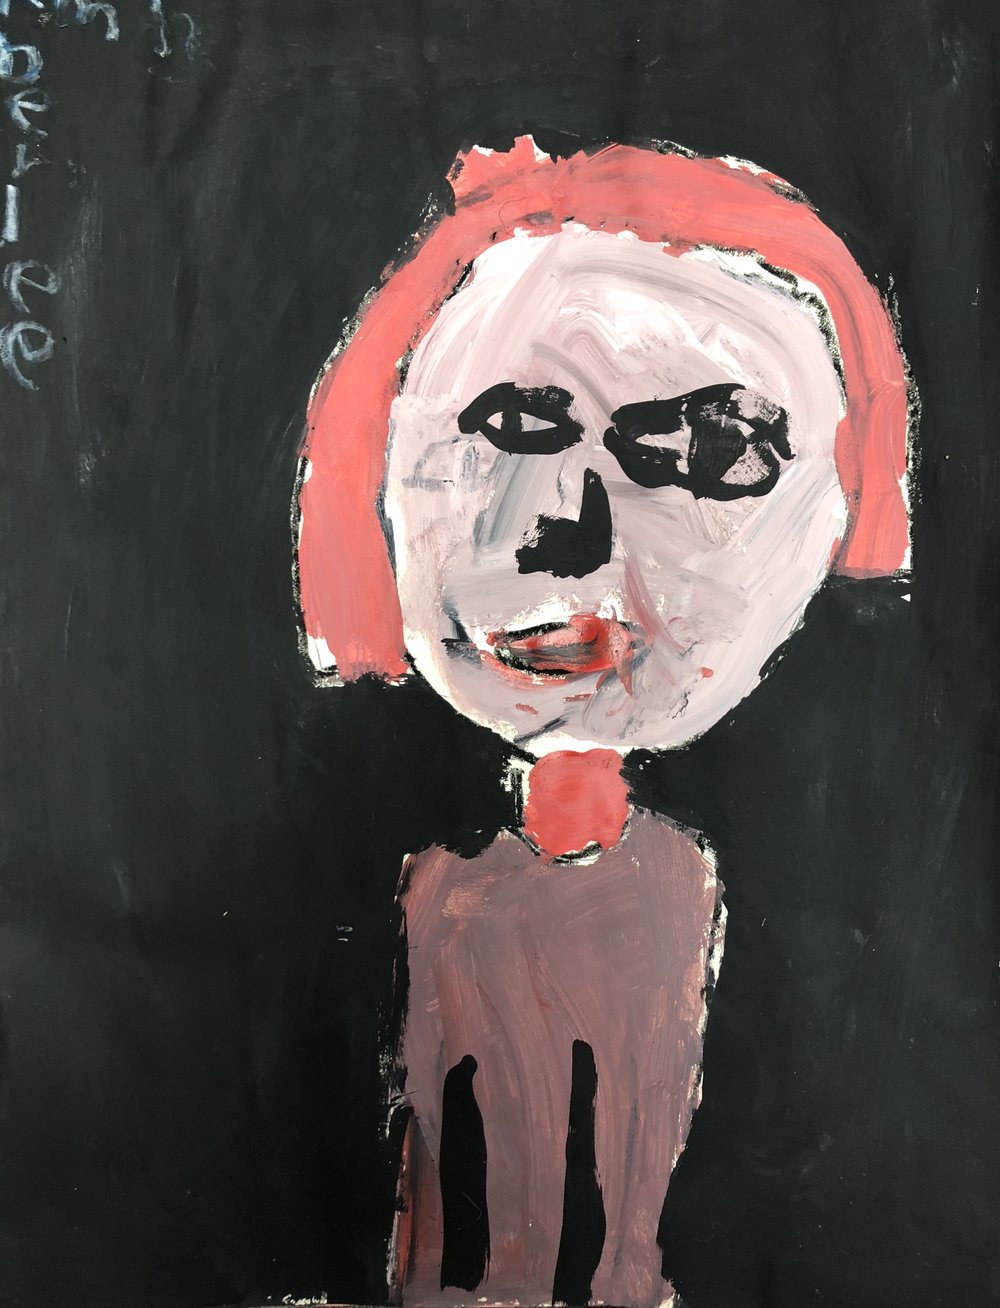 Picasso Rose/Blue Period Inspired Self-Portrait - 1st Grade